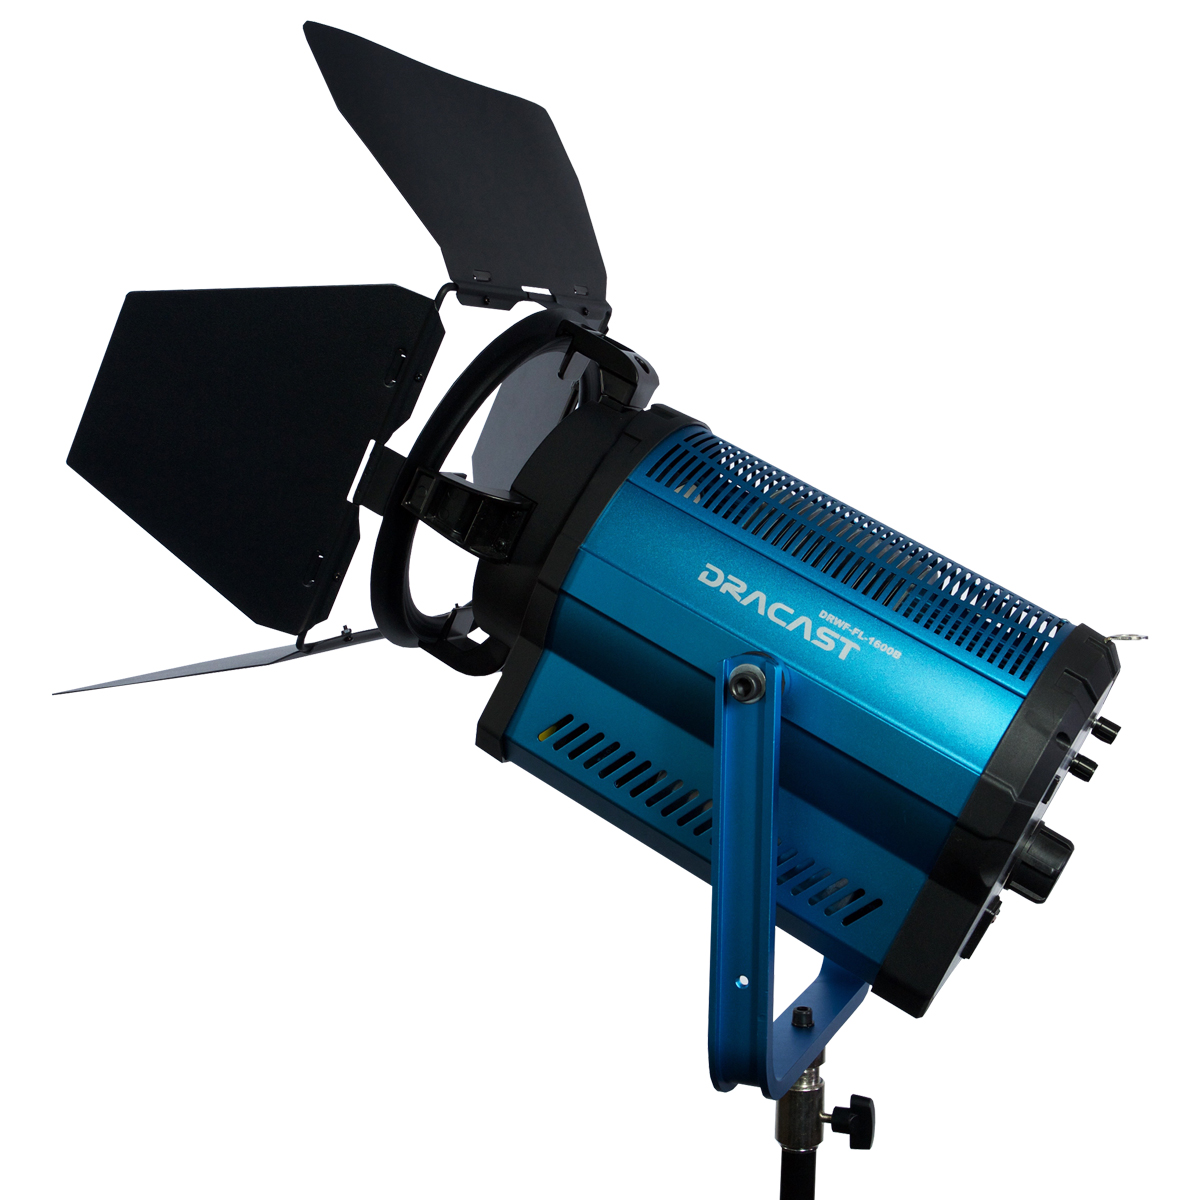 Led Studio Light Repair: Fresnel 1500 LED Studio Light